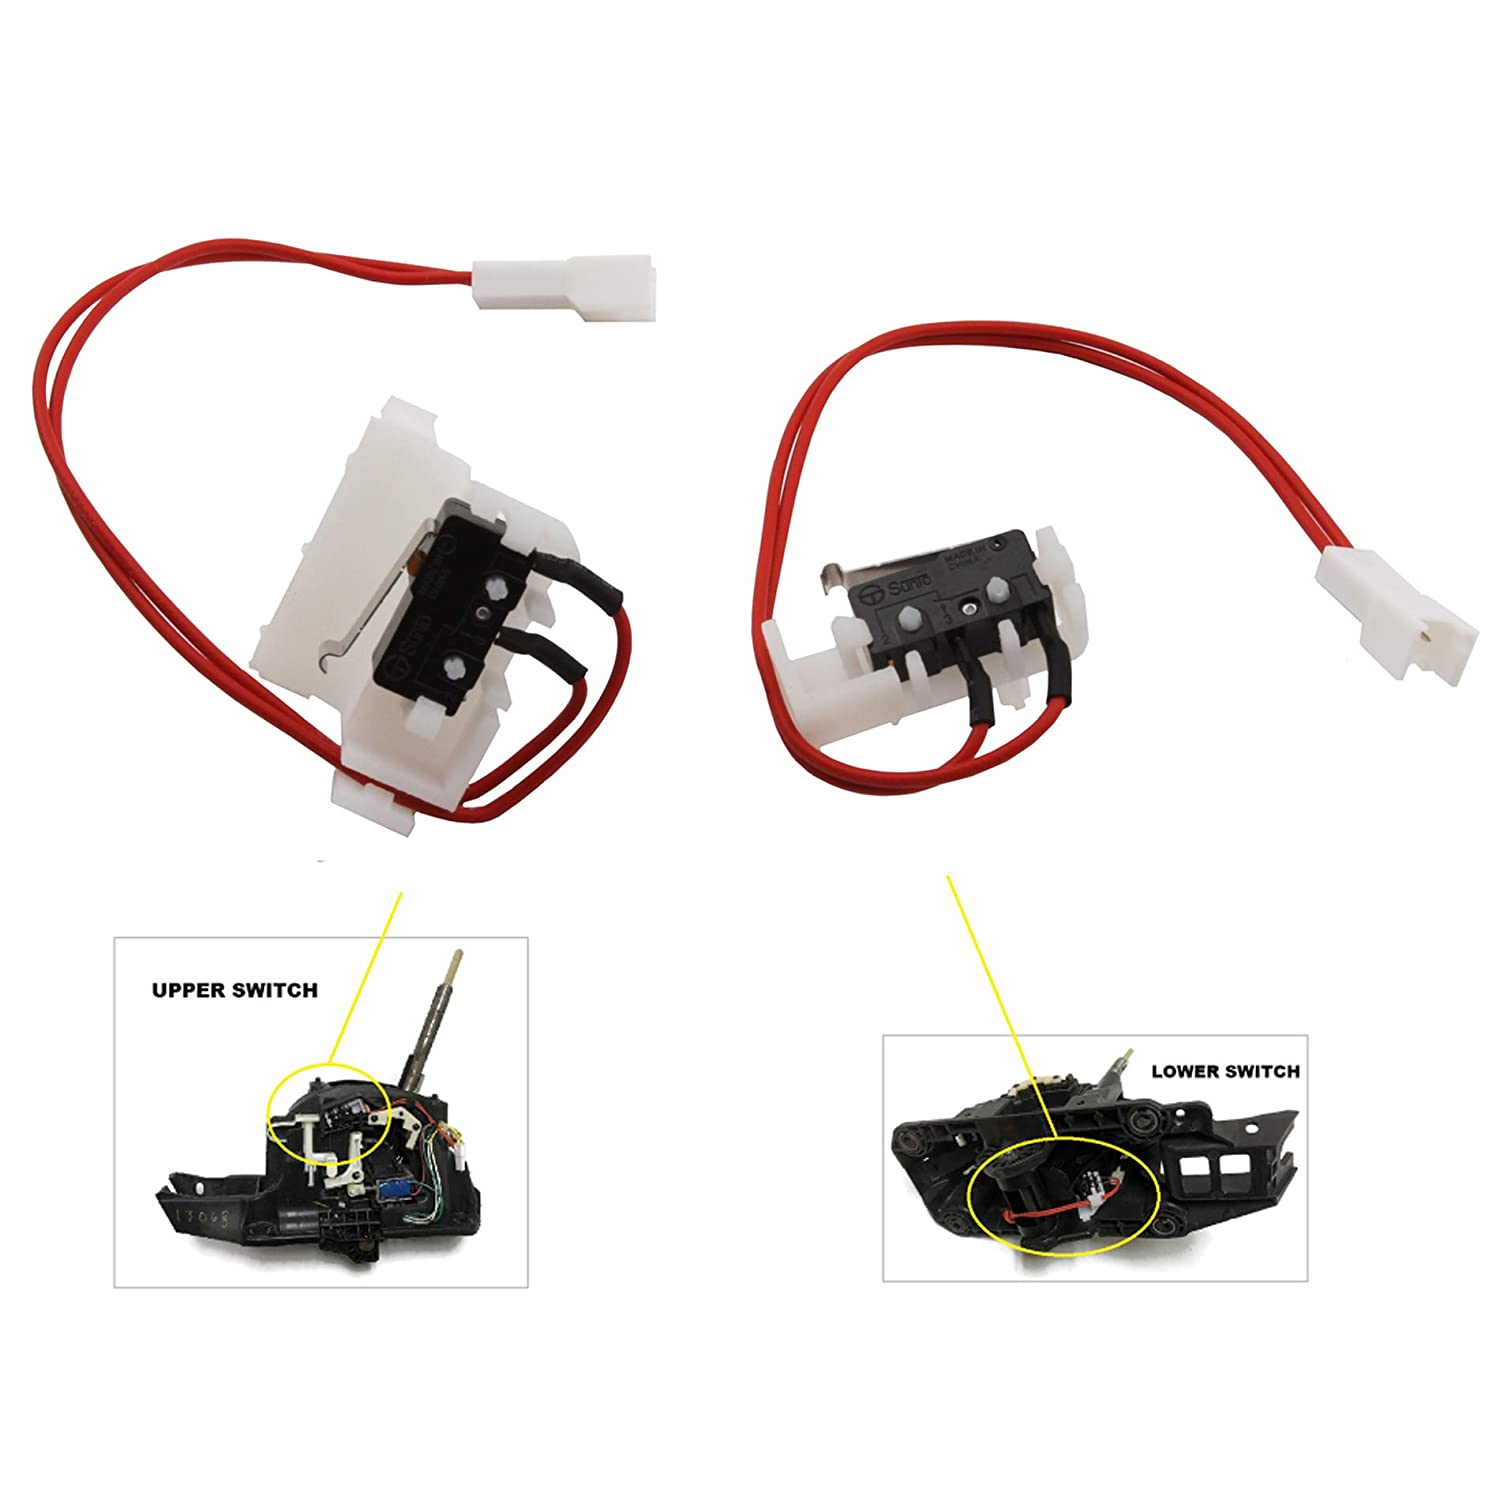 Shifter Repair Kit New Set of 2pcs For 13-17 Nissan Altima Pathfinder 2013 2014 2015 2016 2017 Advane Ignition